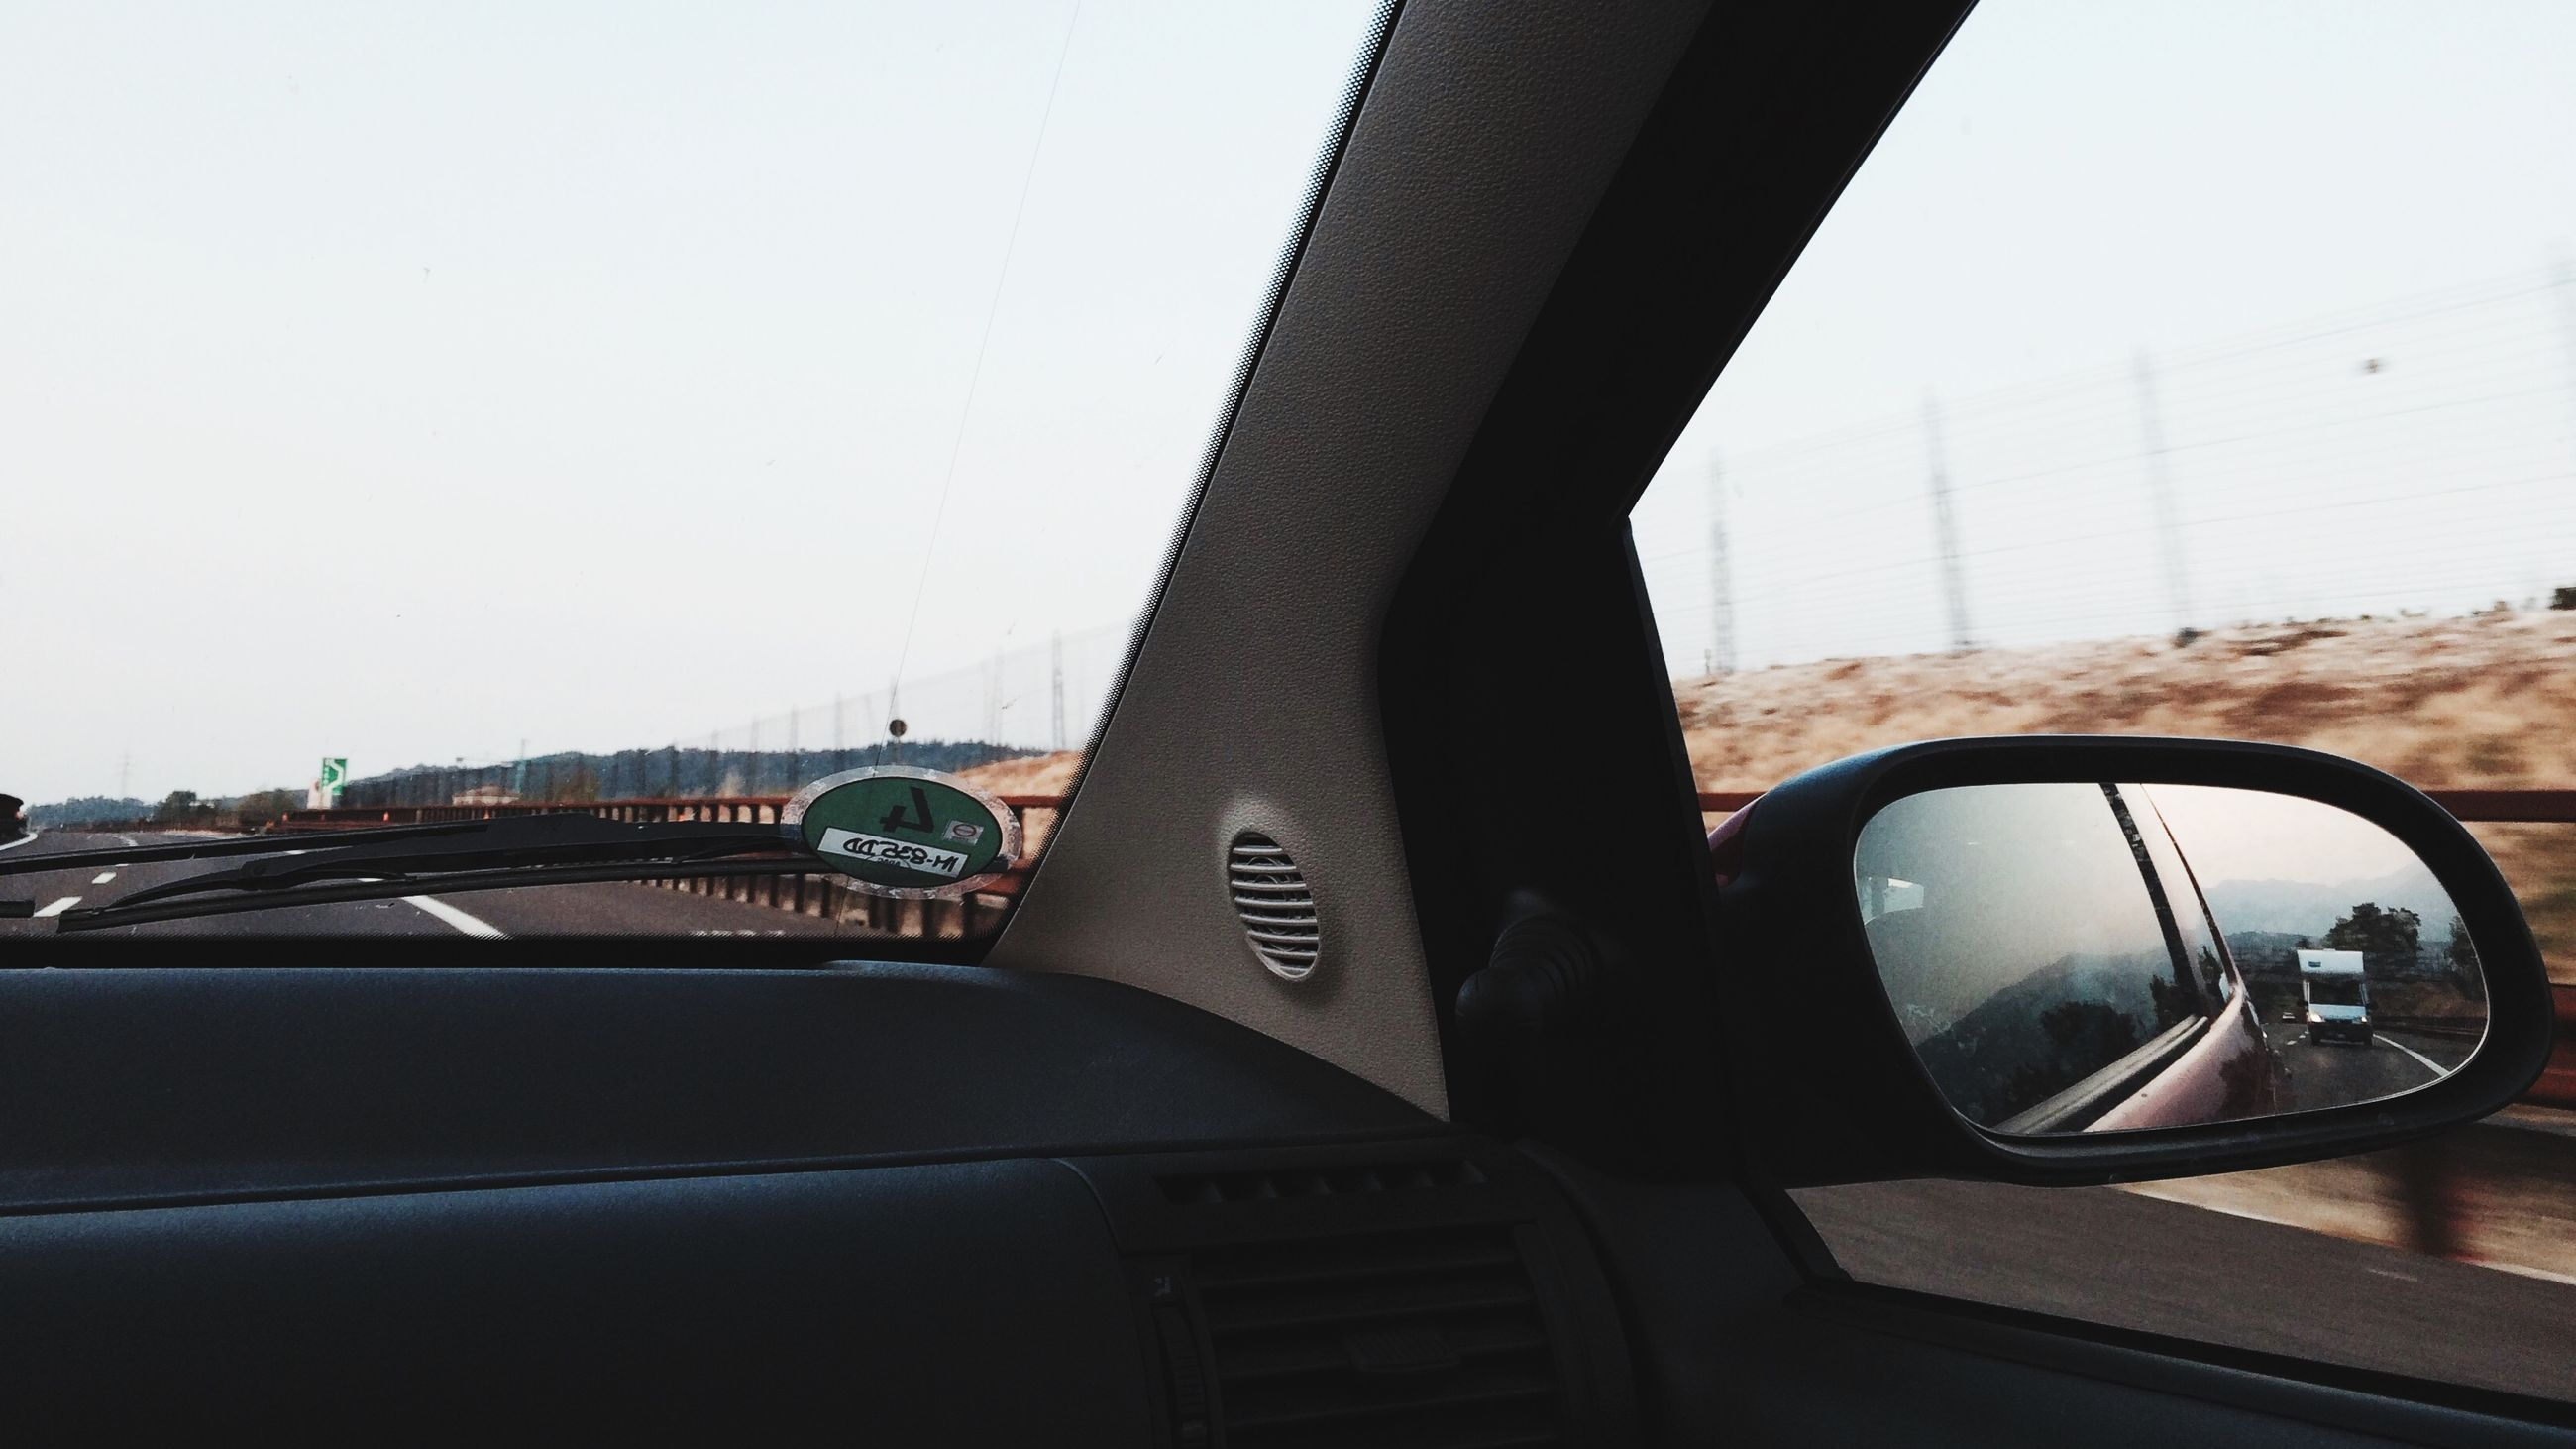 transportation, mode of transport, architecture, built structure, clear sky, car, land vehicle, bridge - man made structure, connection, building exterior, part of, copy space, cropped, sky, engineering, city, road, window, day, travel